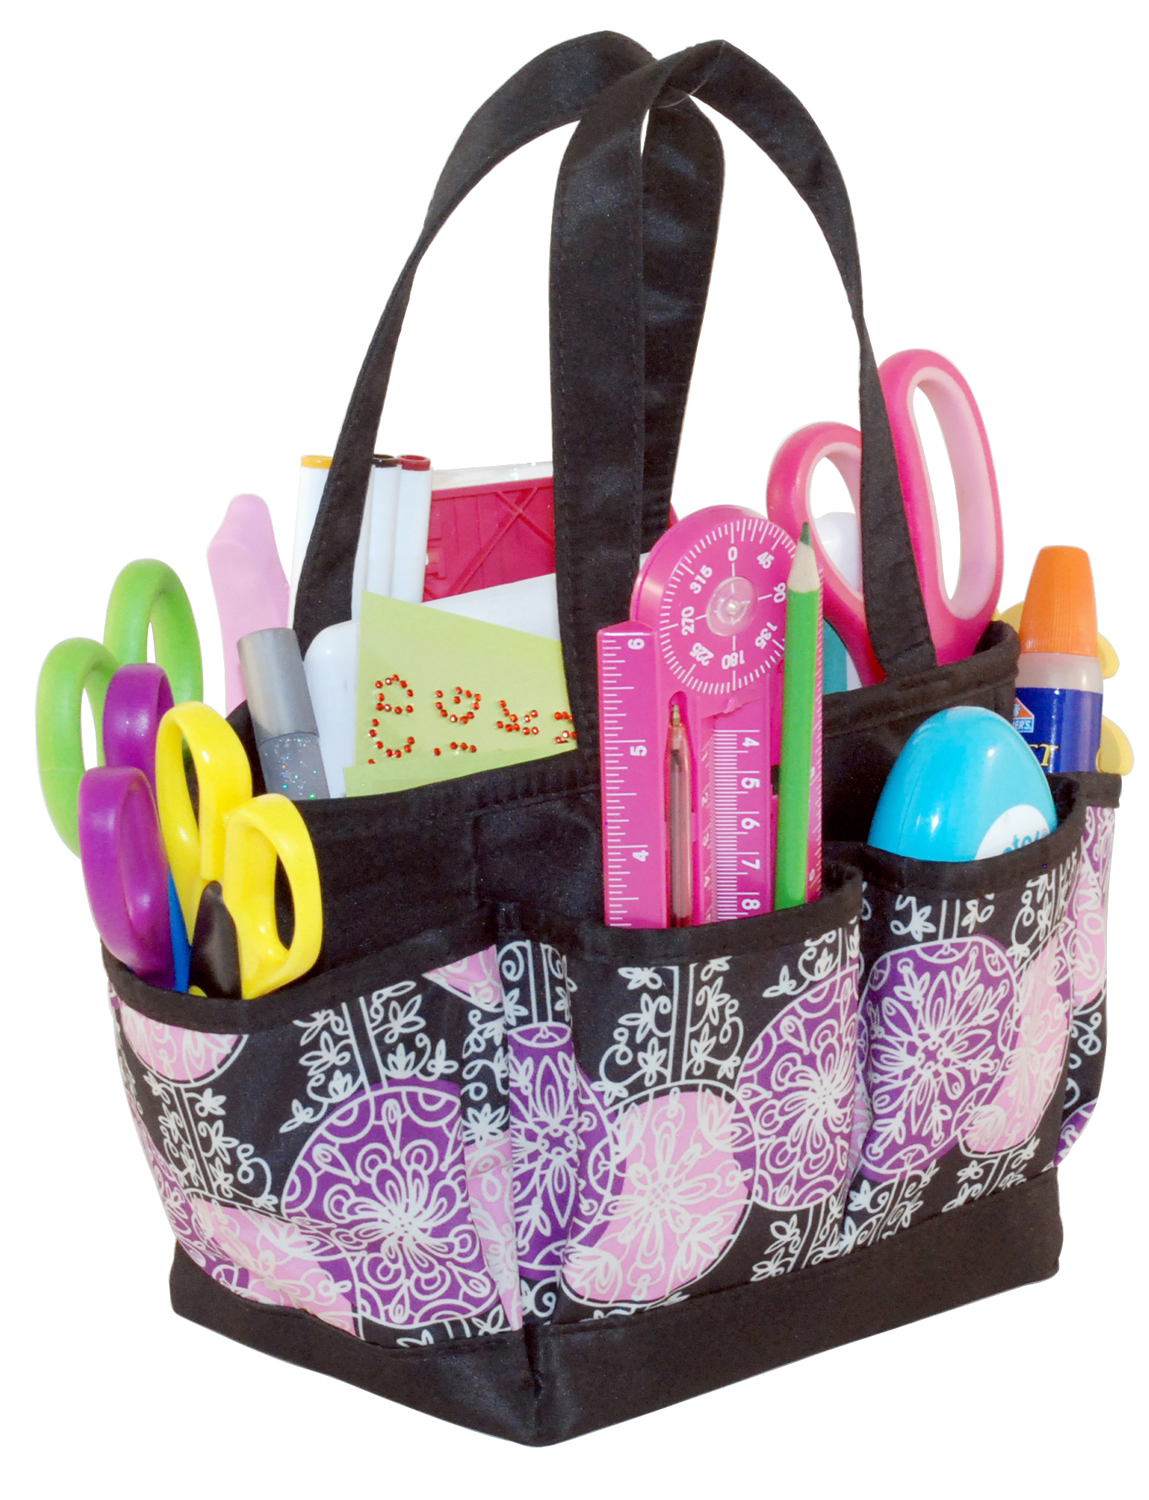 Papermania craft tote - Craft Storage Tote Bags Everything Mary Mini Scrappers Tote